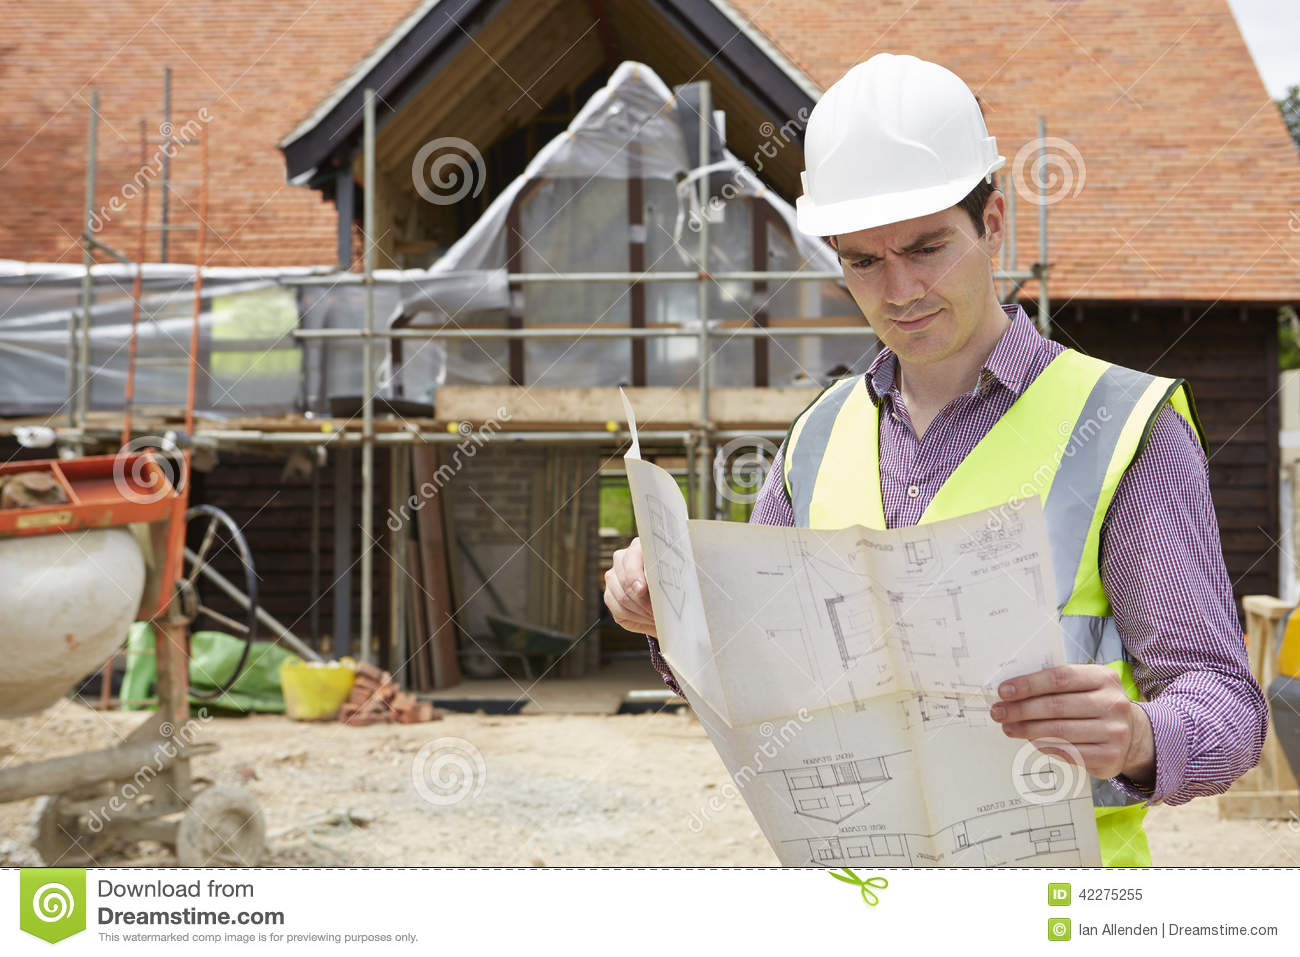 Architect on building site looking at house plans stock for Looking for an architect to design a house